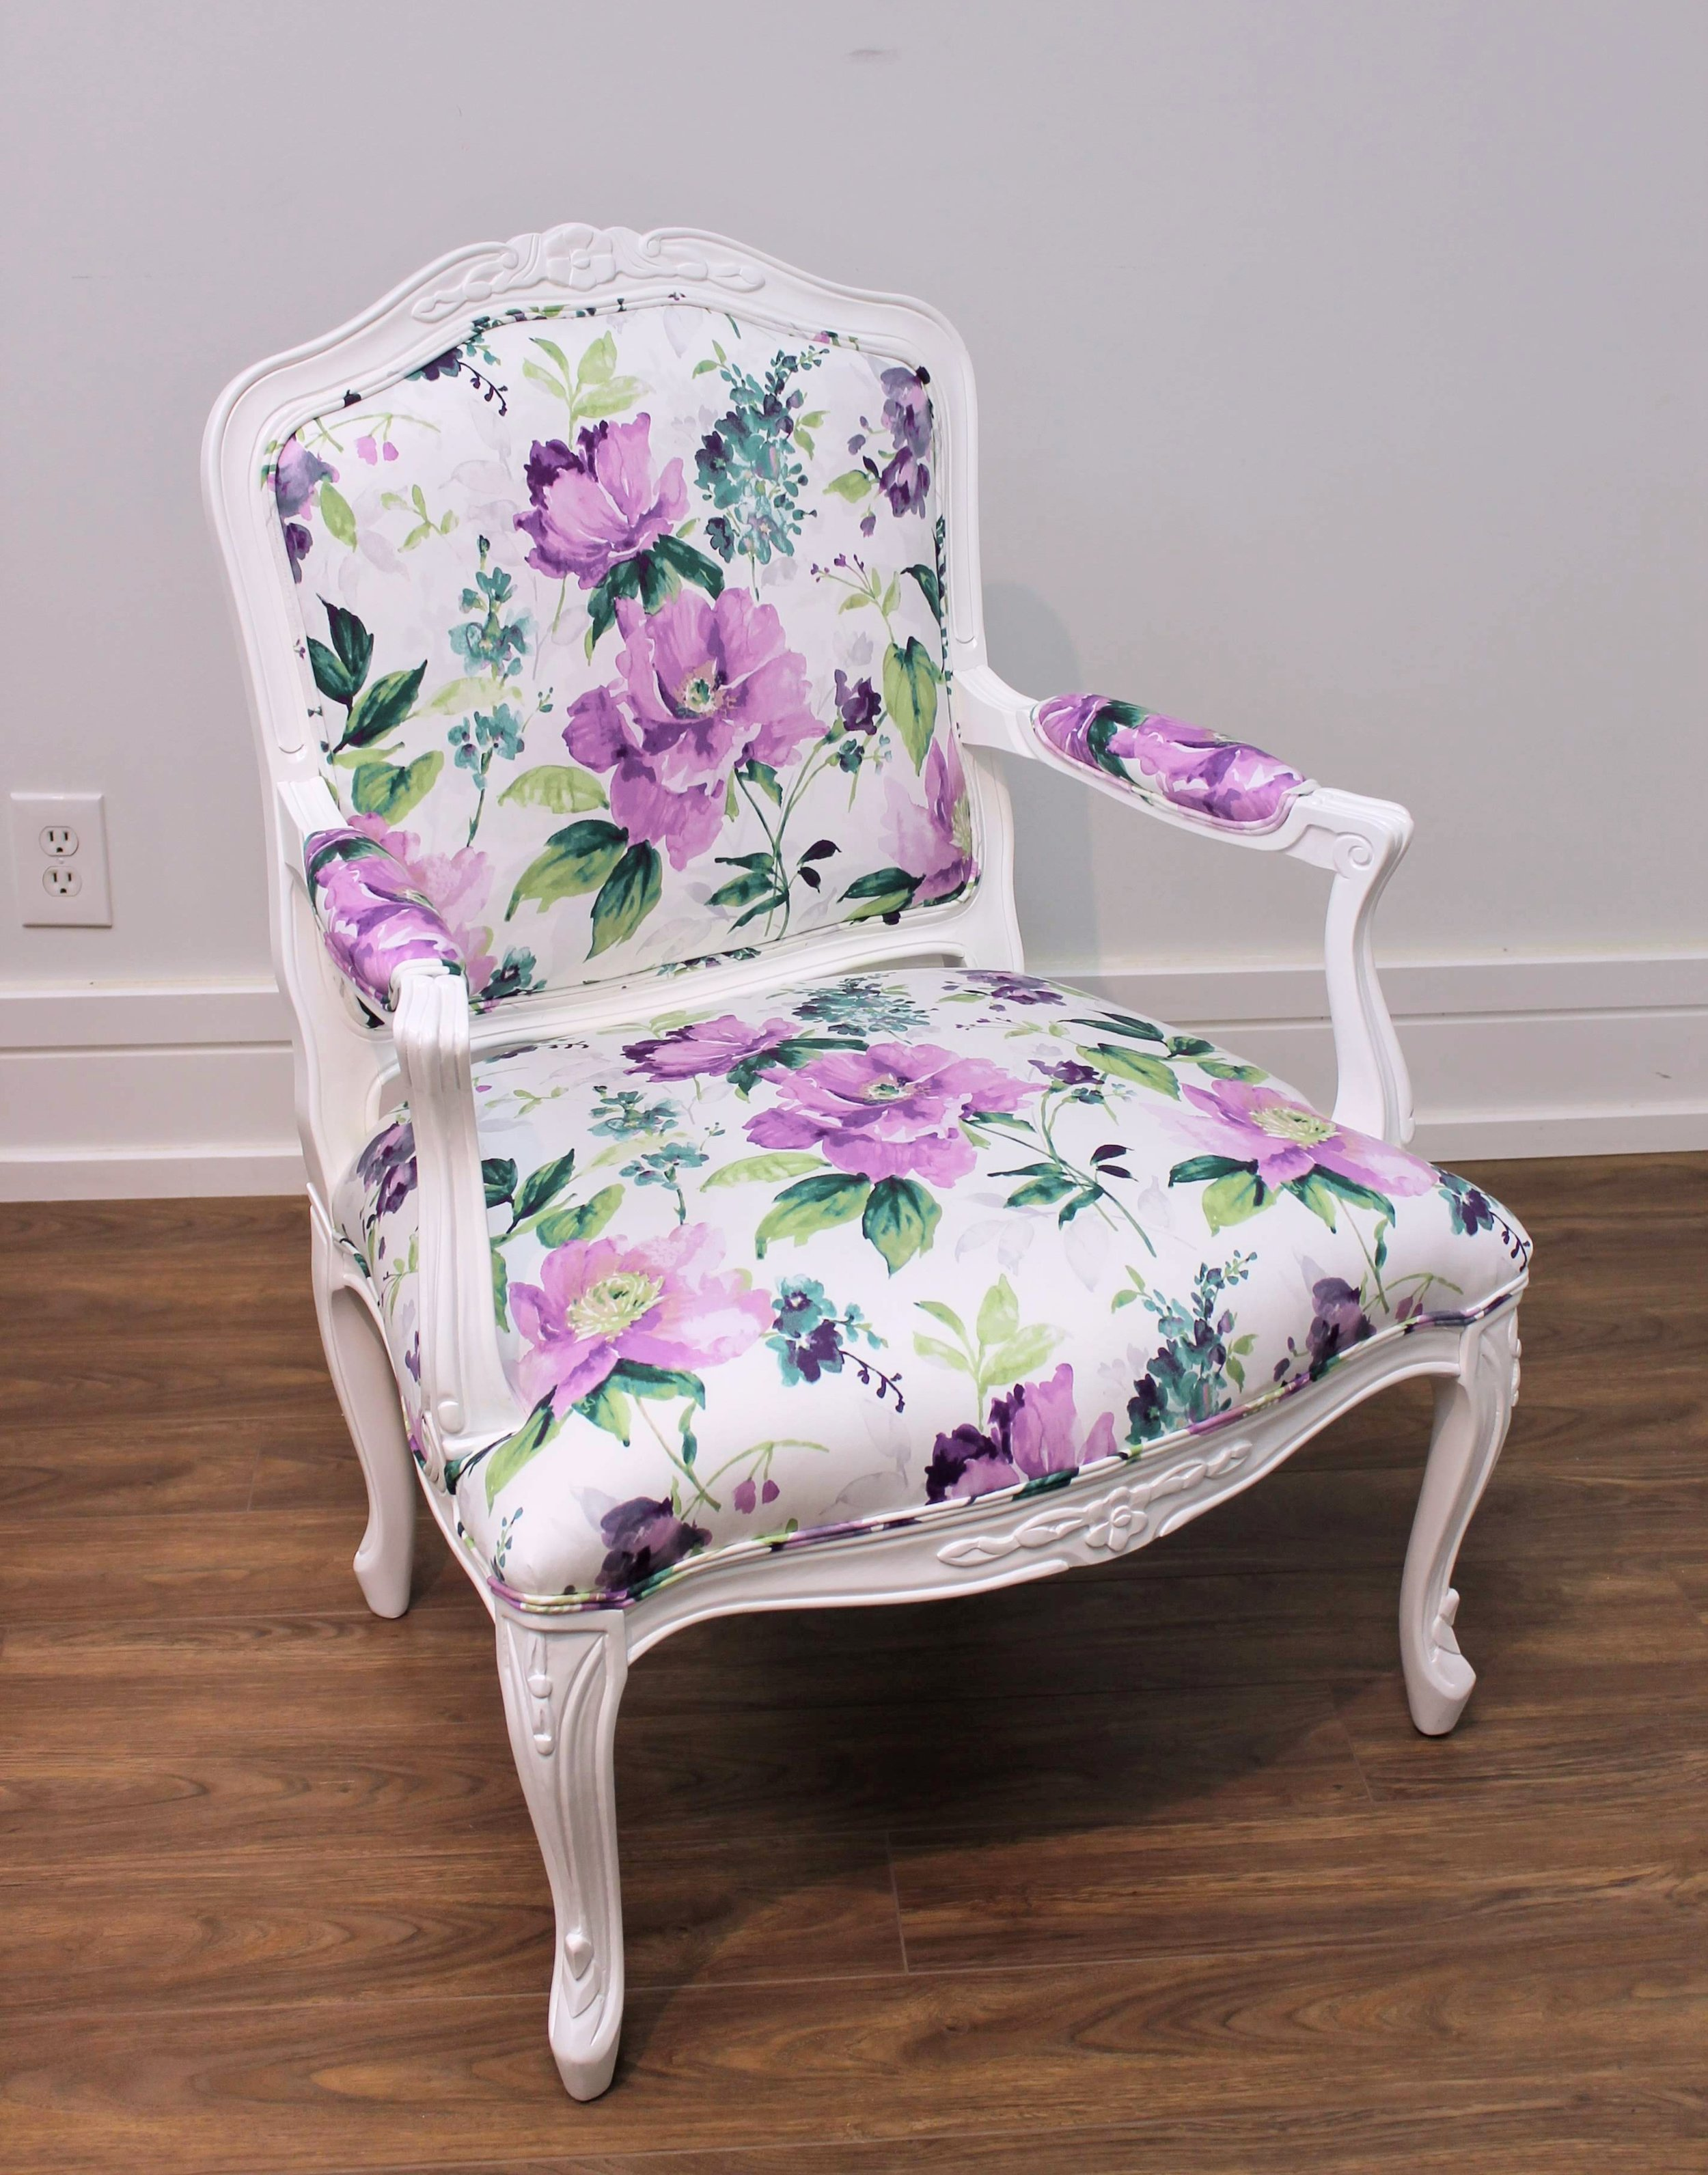 chair re-upholstery